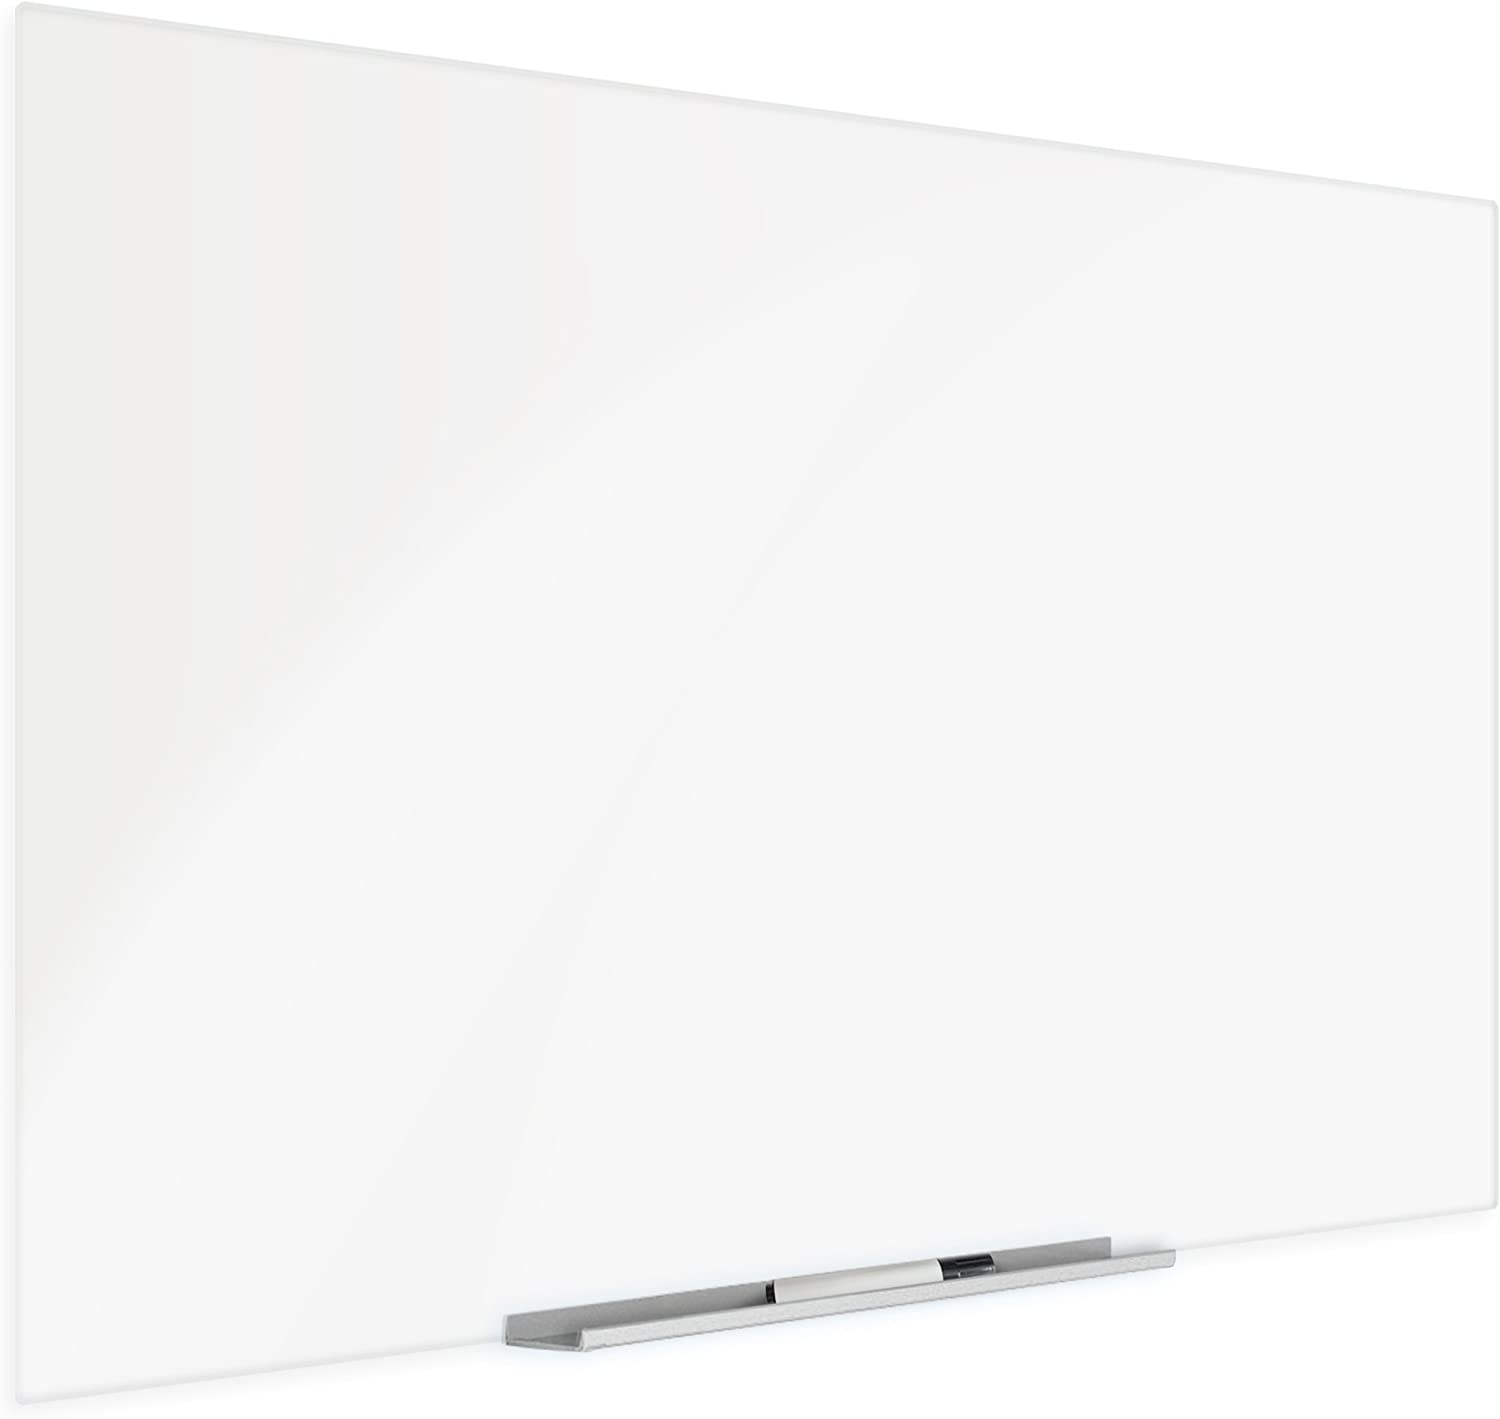 36 x 60 Inch Frameless White Low Iron Glass Magnetic Dry-Erase Board Eased Corners Floating Whiteboard by Fab Glass and Mirror